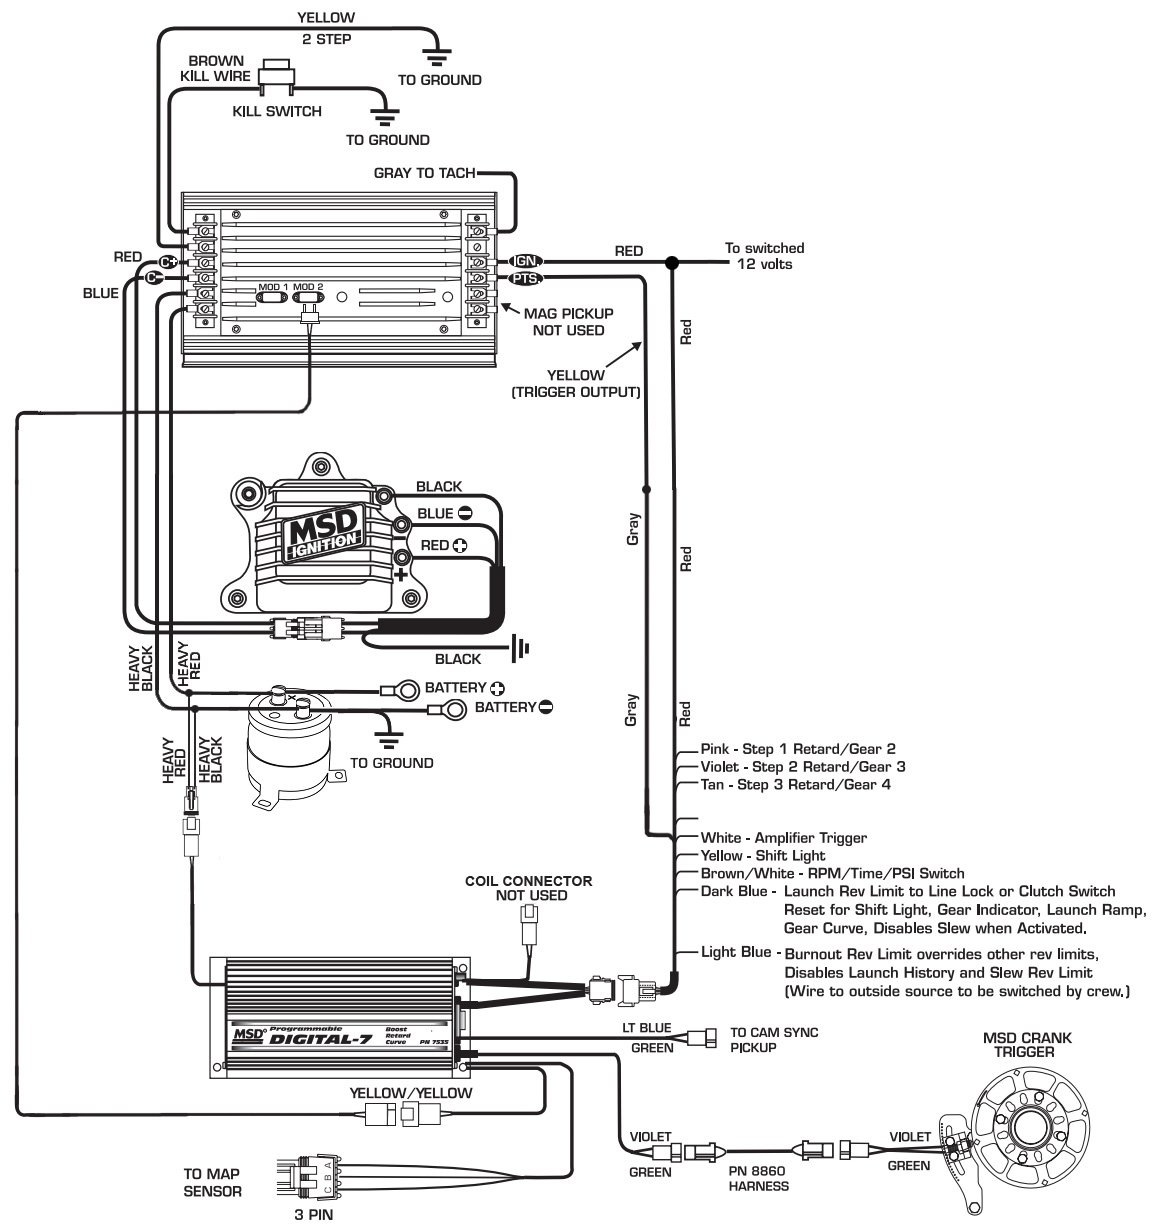 Msd 7531 Wiring Diagram : 23 Wiring Diagram Images